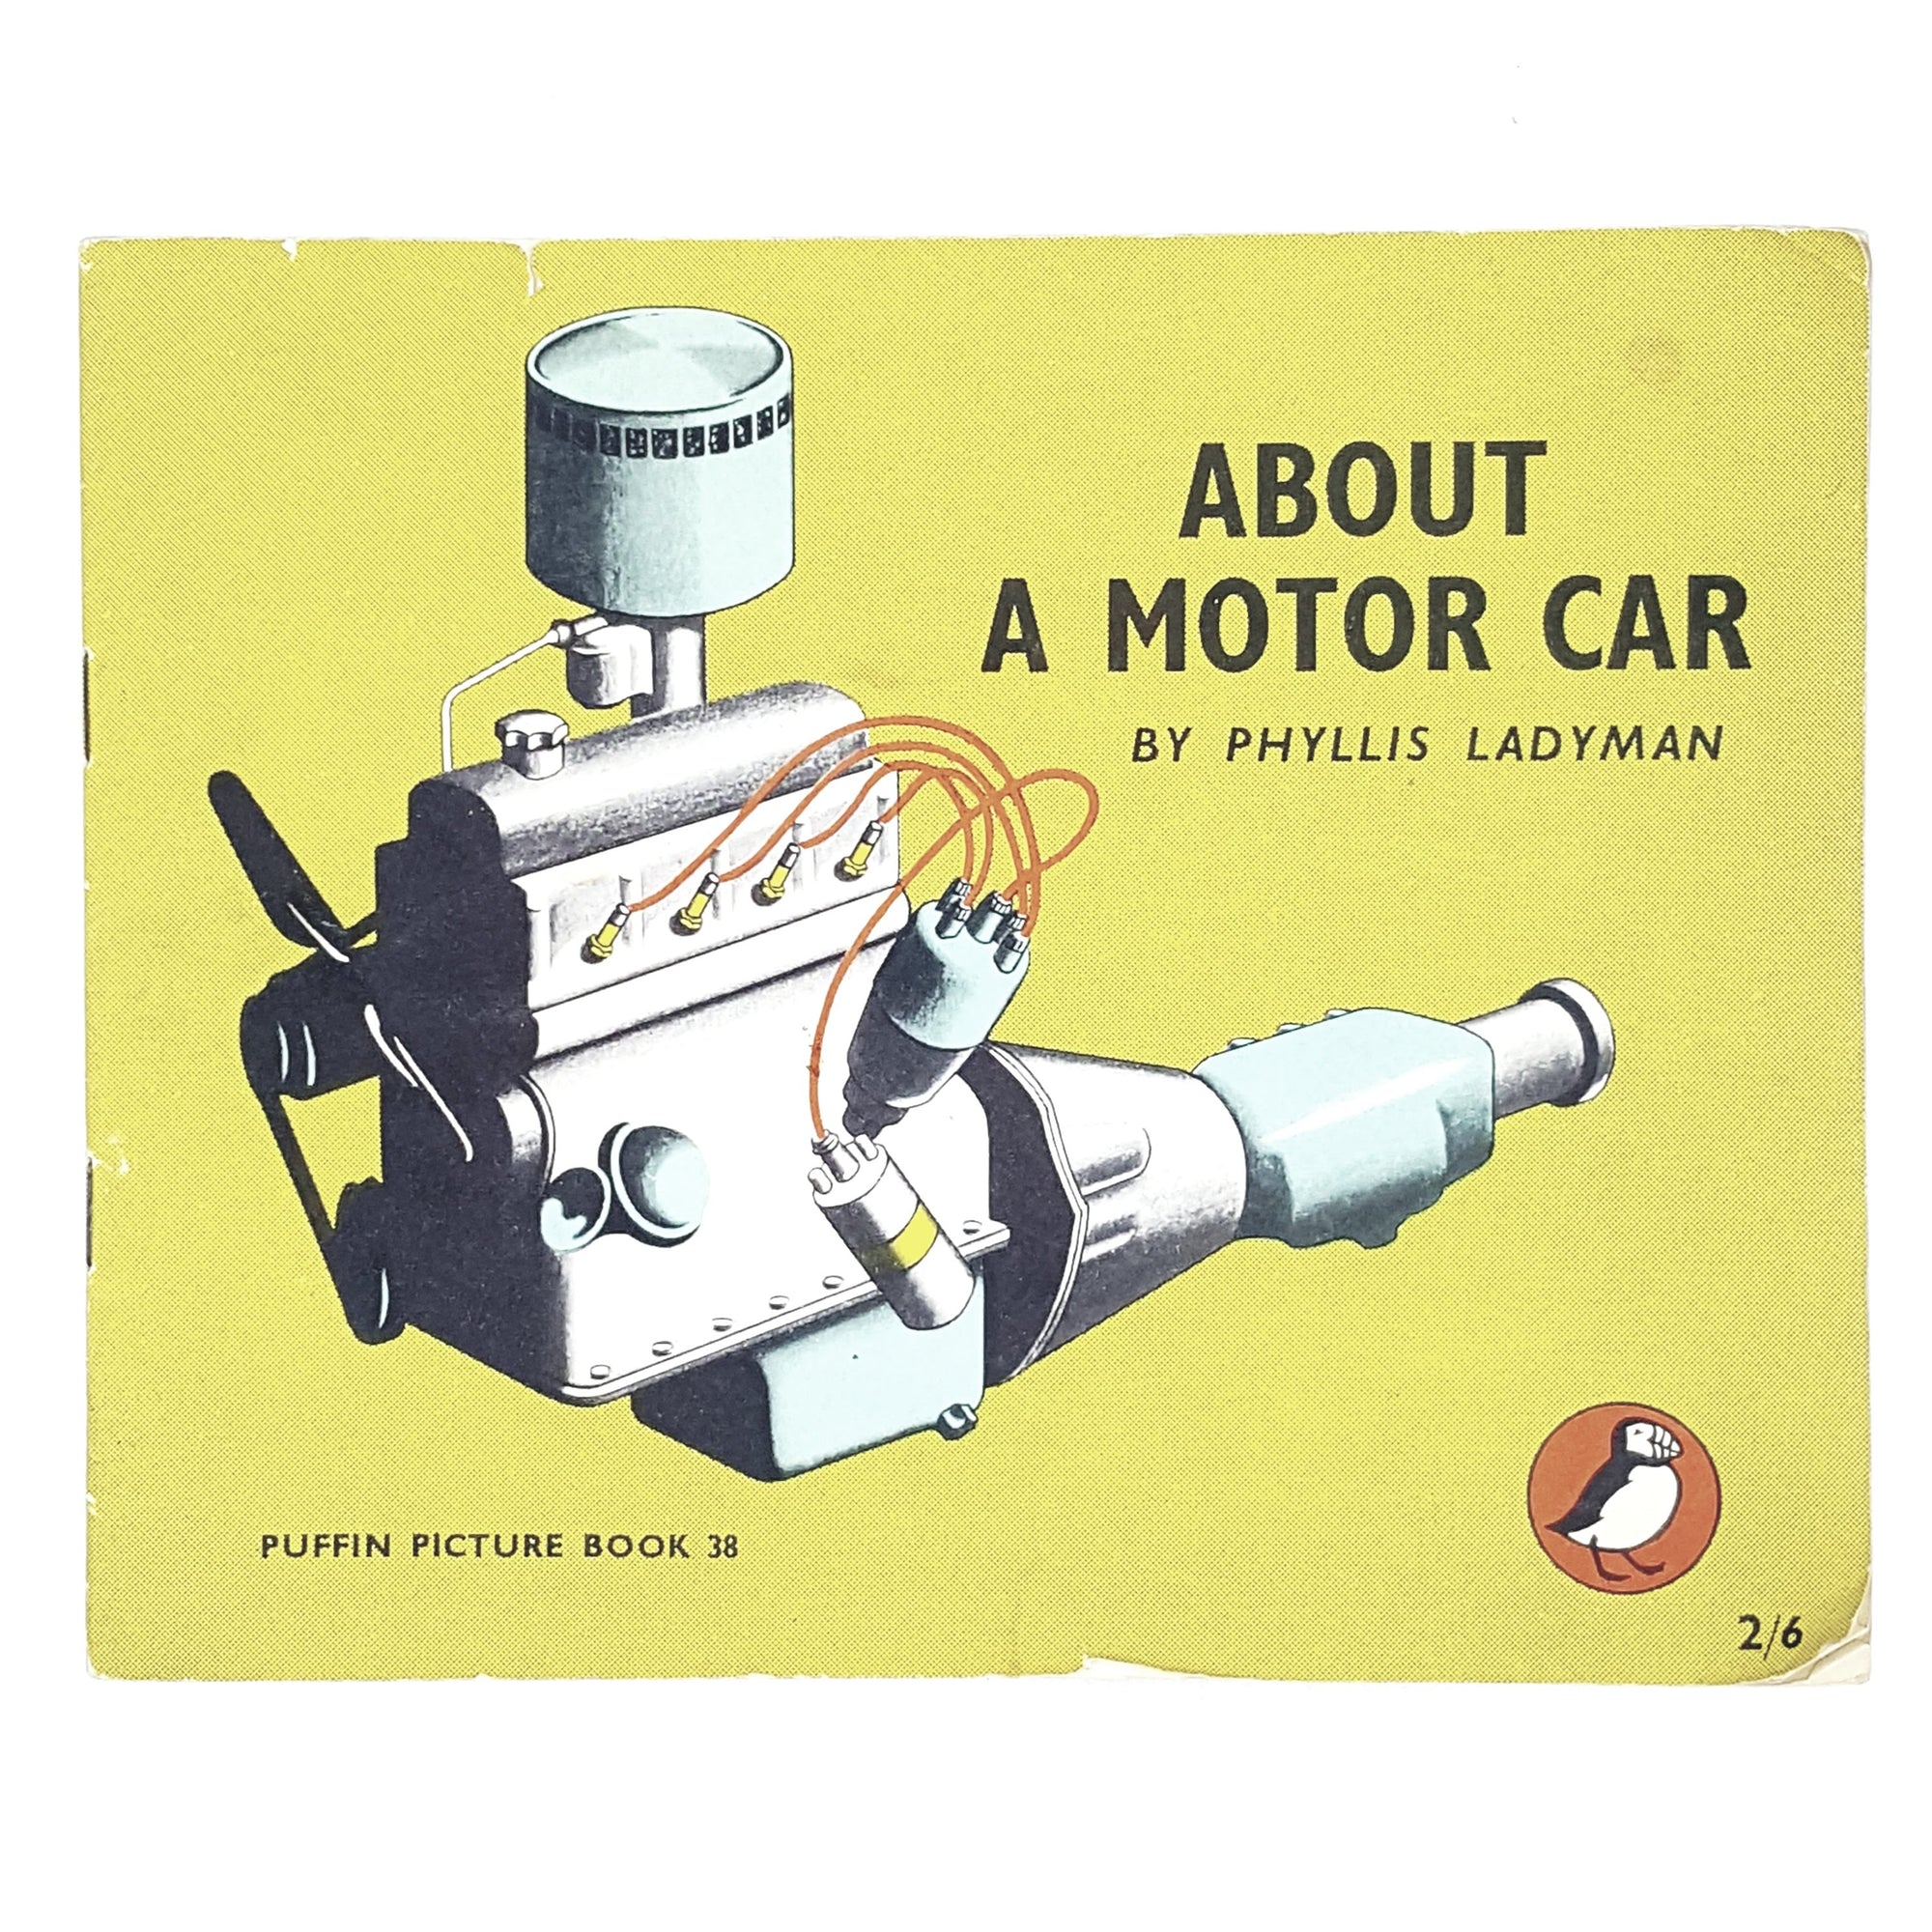 Vintage Puffin About A Motor Car by Phyllis Ladyman 1948